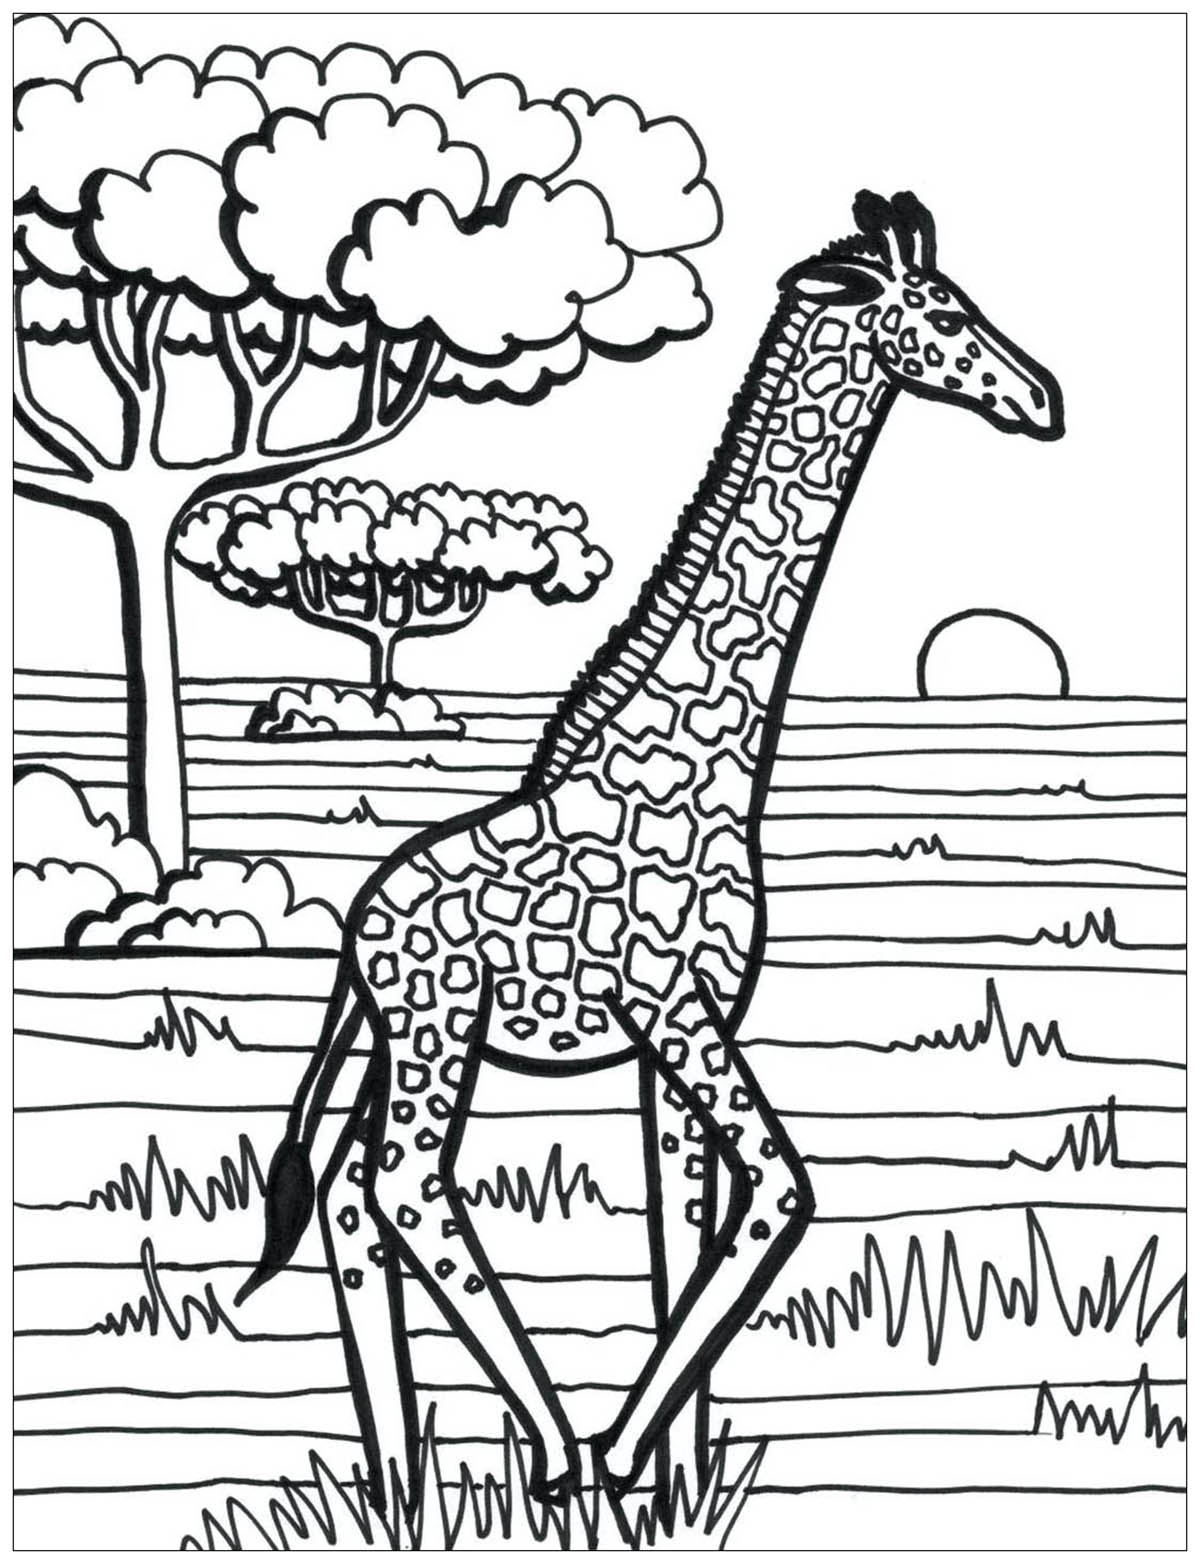 Printable Giraffes coloring page to print and color